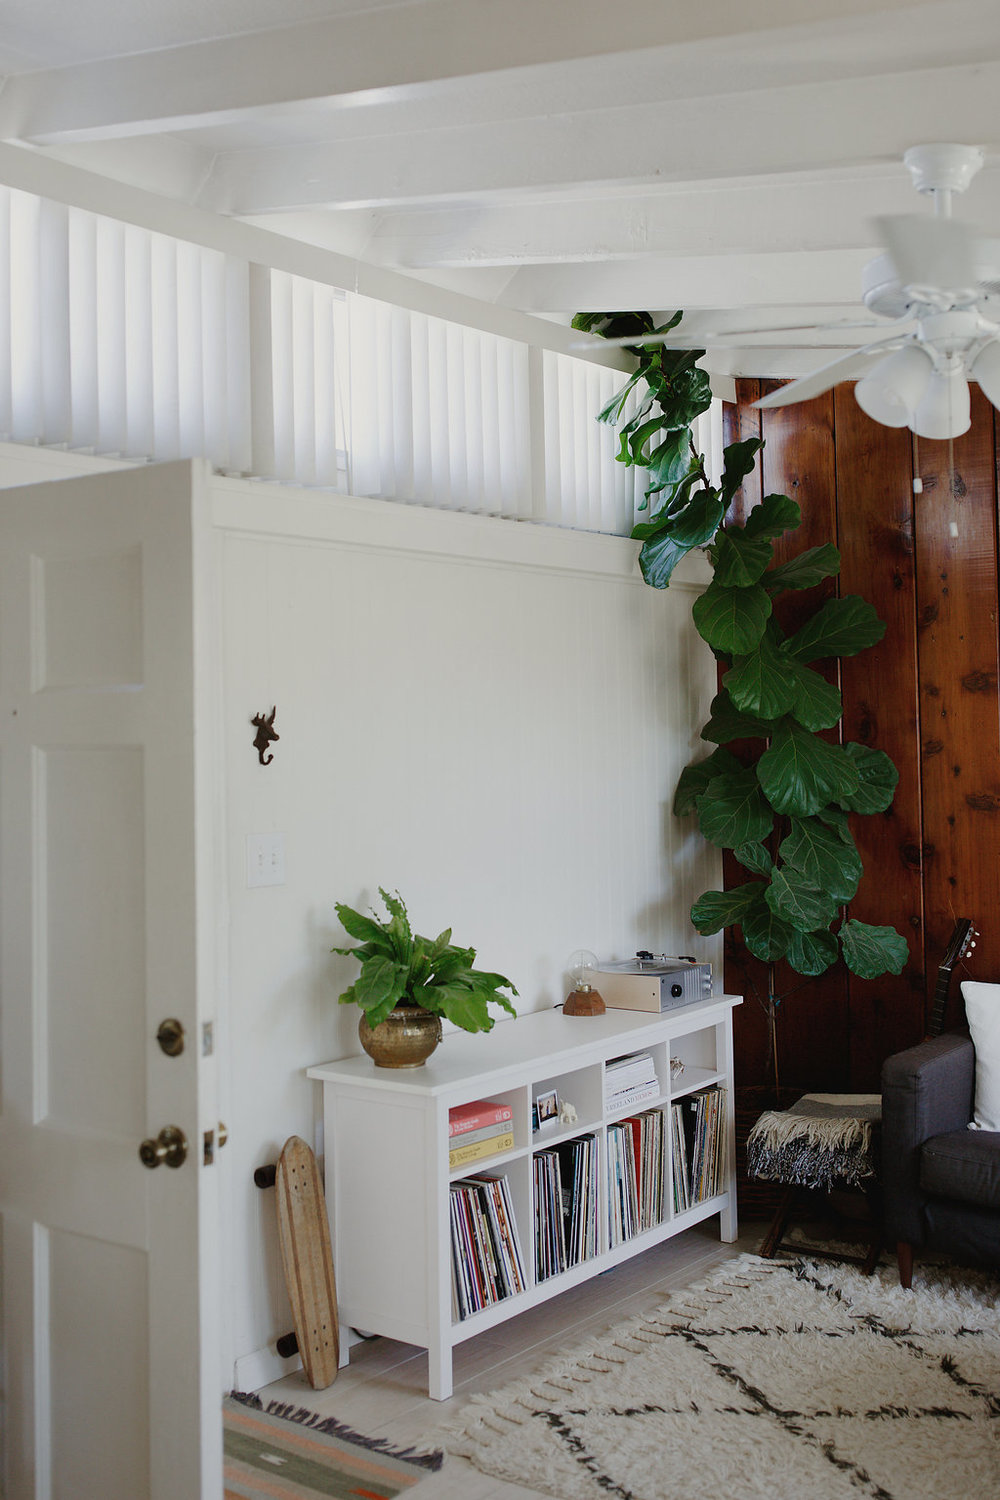 The Bungalow Is Our Five Hundred Something Square Feet Of Bliss Tucked In  The Heart Of Costa Mesa, California. By Day, The Sun Streams In From The ...